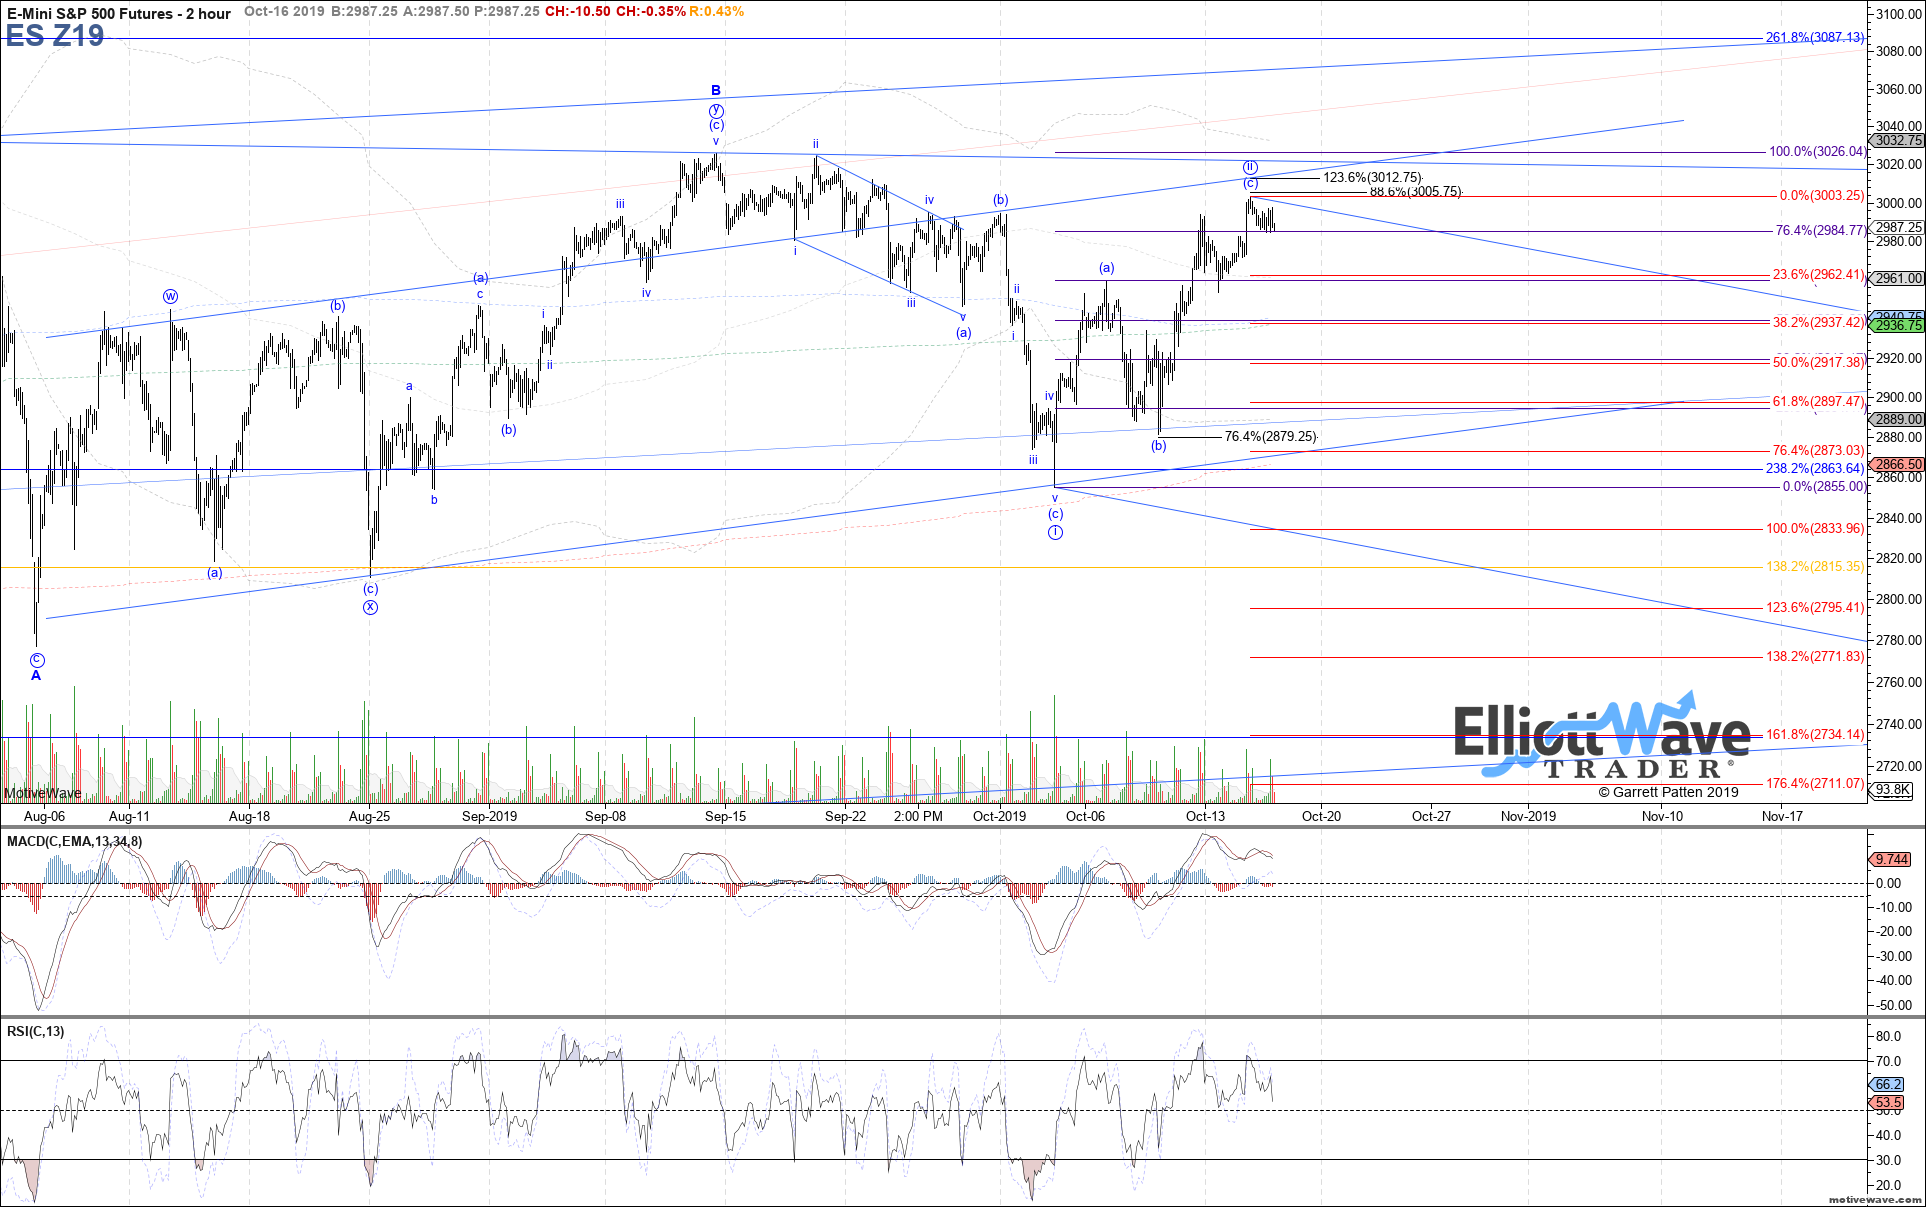 ES Z19 - Primary Analysis - Oct-16 1055 AM (2 hour)